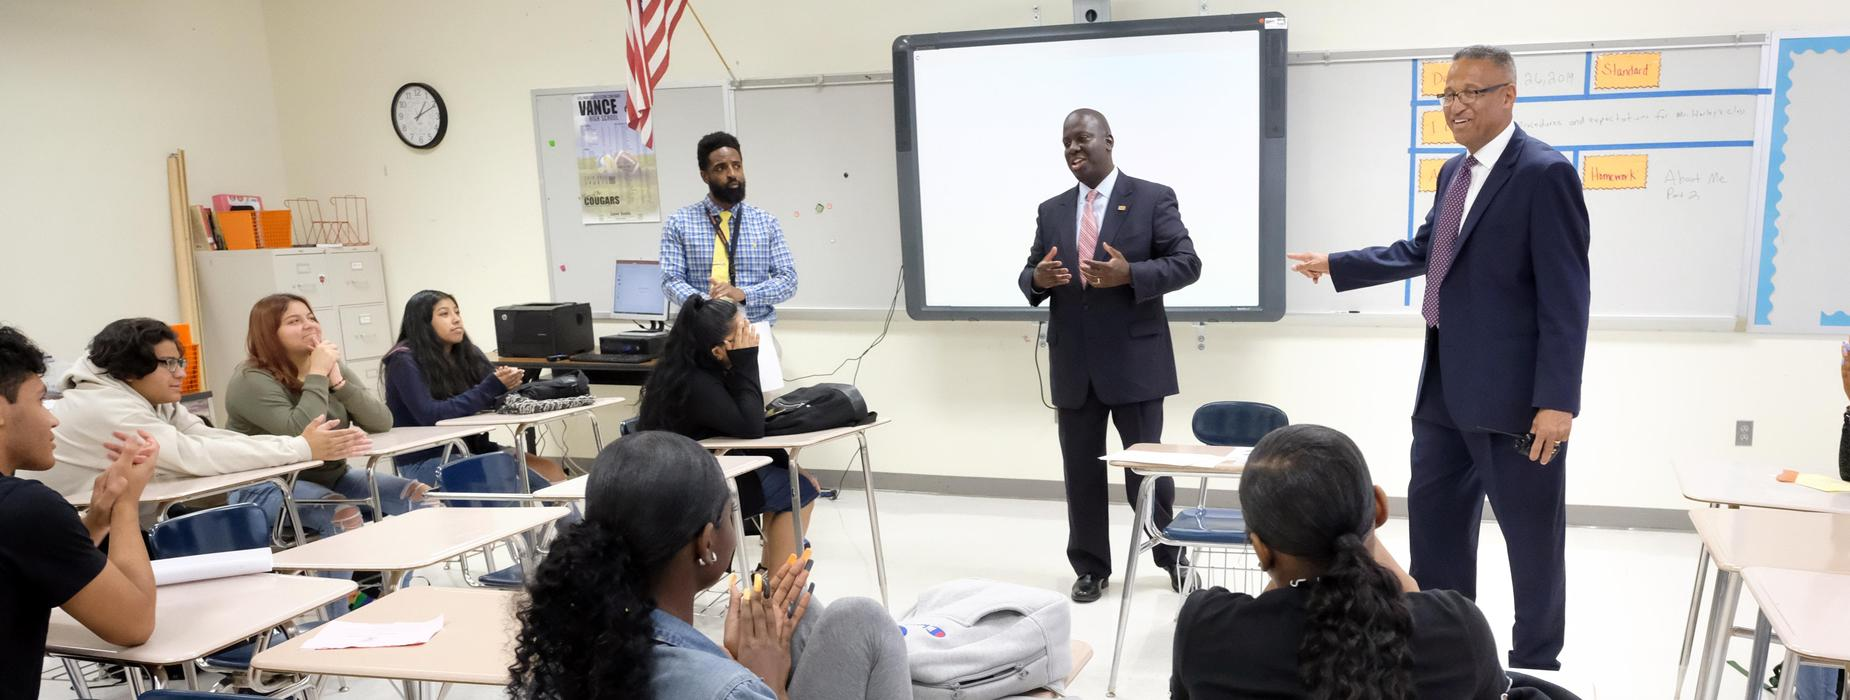 Superintendent Earnest Winston visits the classroom where he taught at Vance High